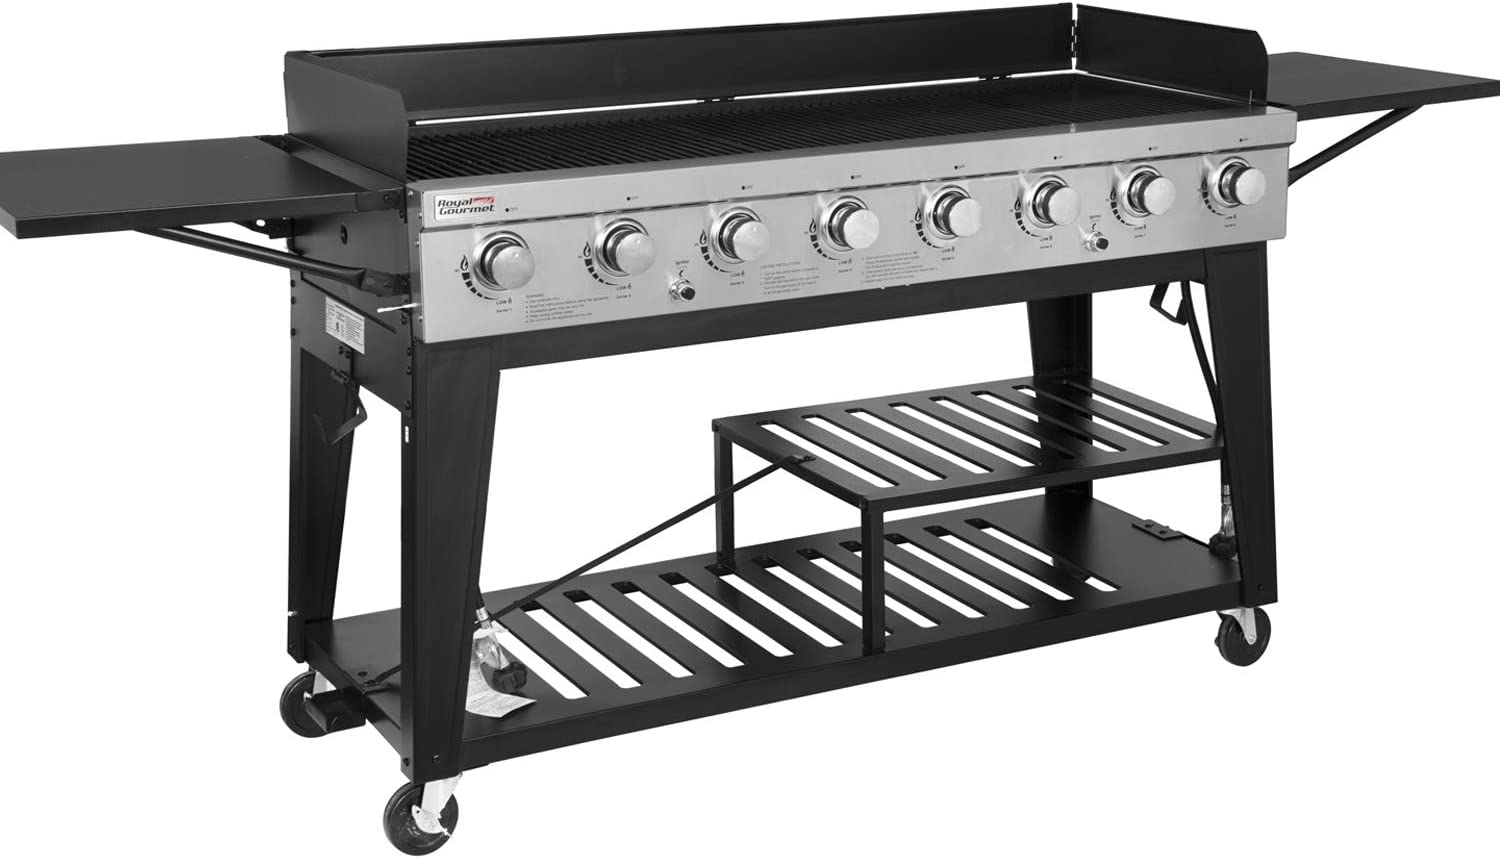 The Royal Gourmet GB8000 8-Burner Gas Grill review & buying guide